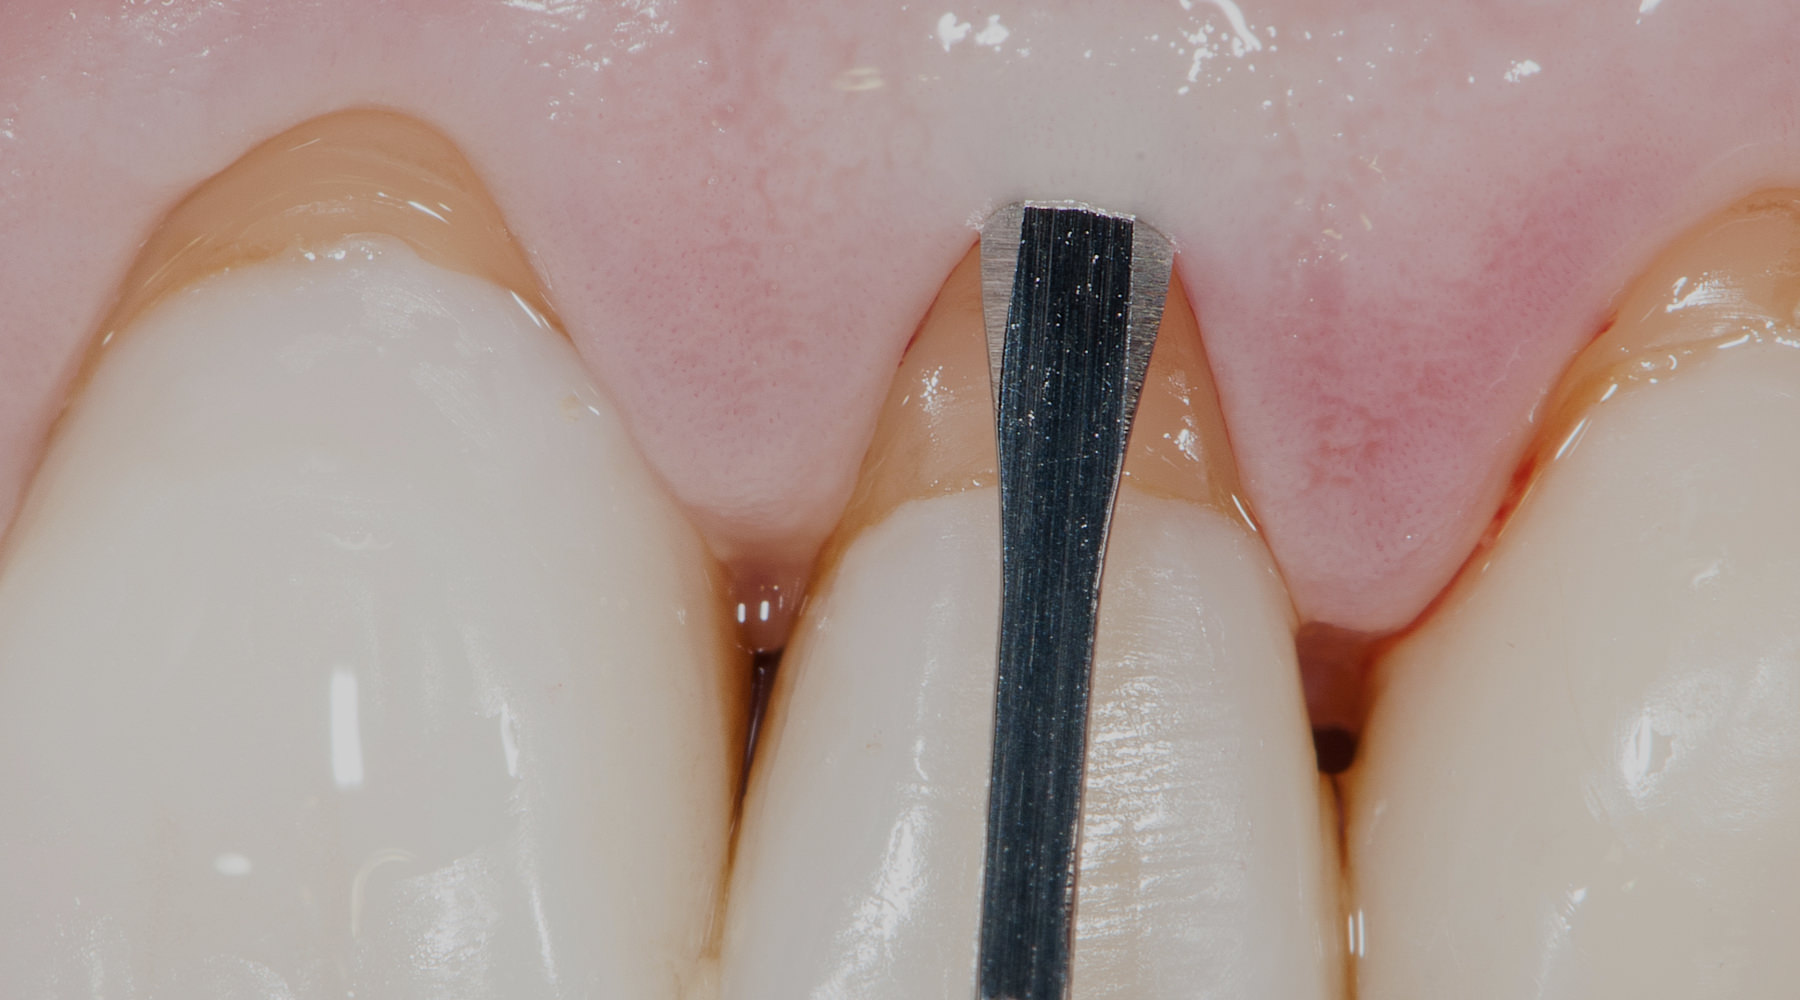 Gingival Recession Treatment - Partial dissection